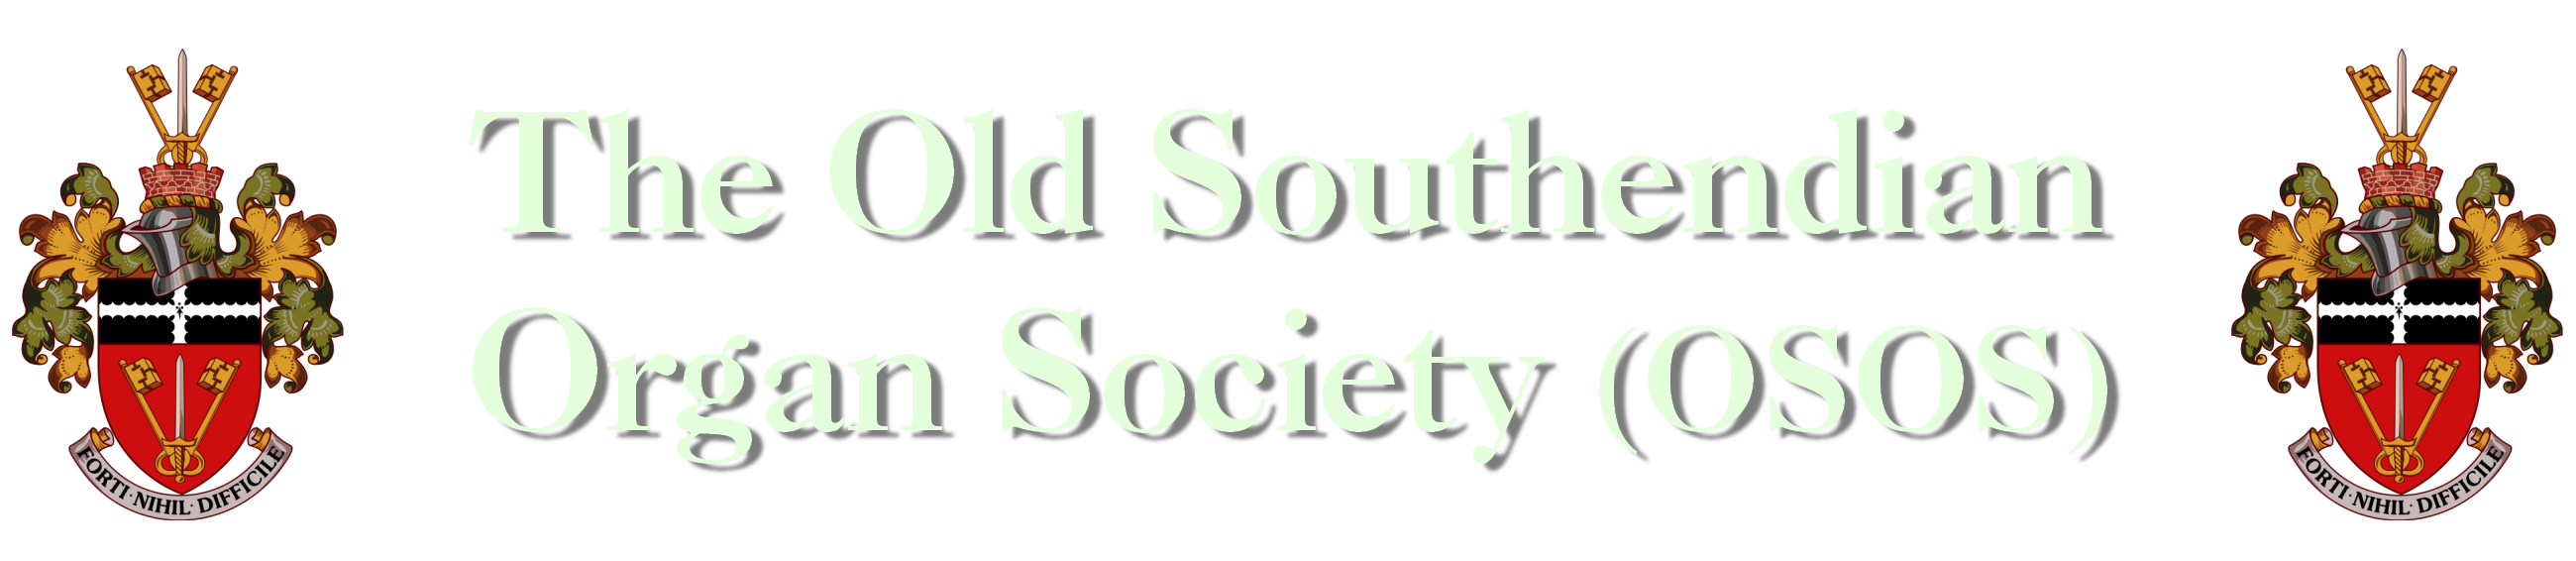 The Old Southendian Organ Society